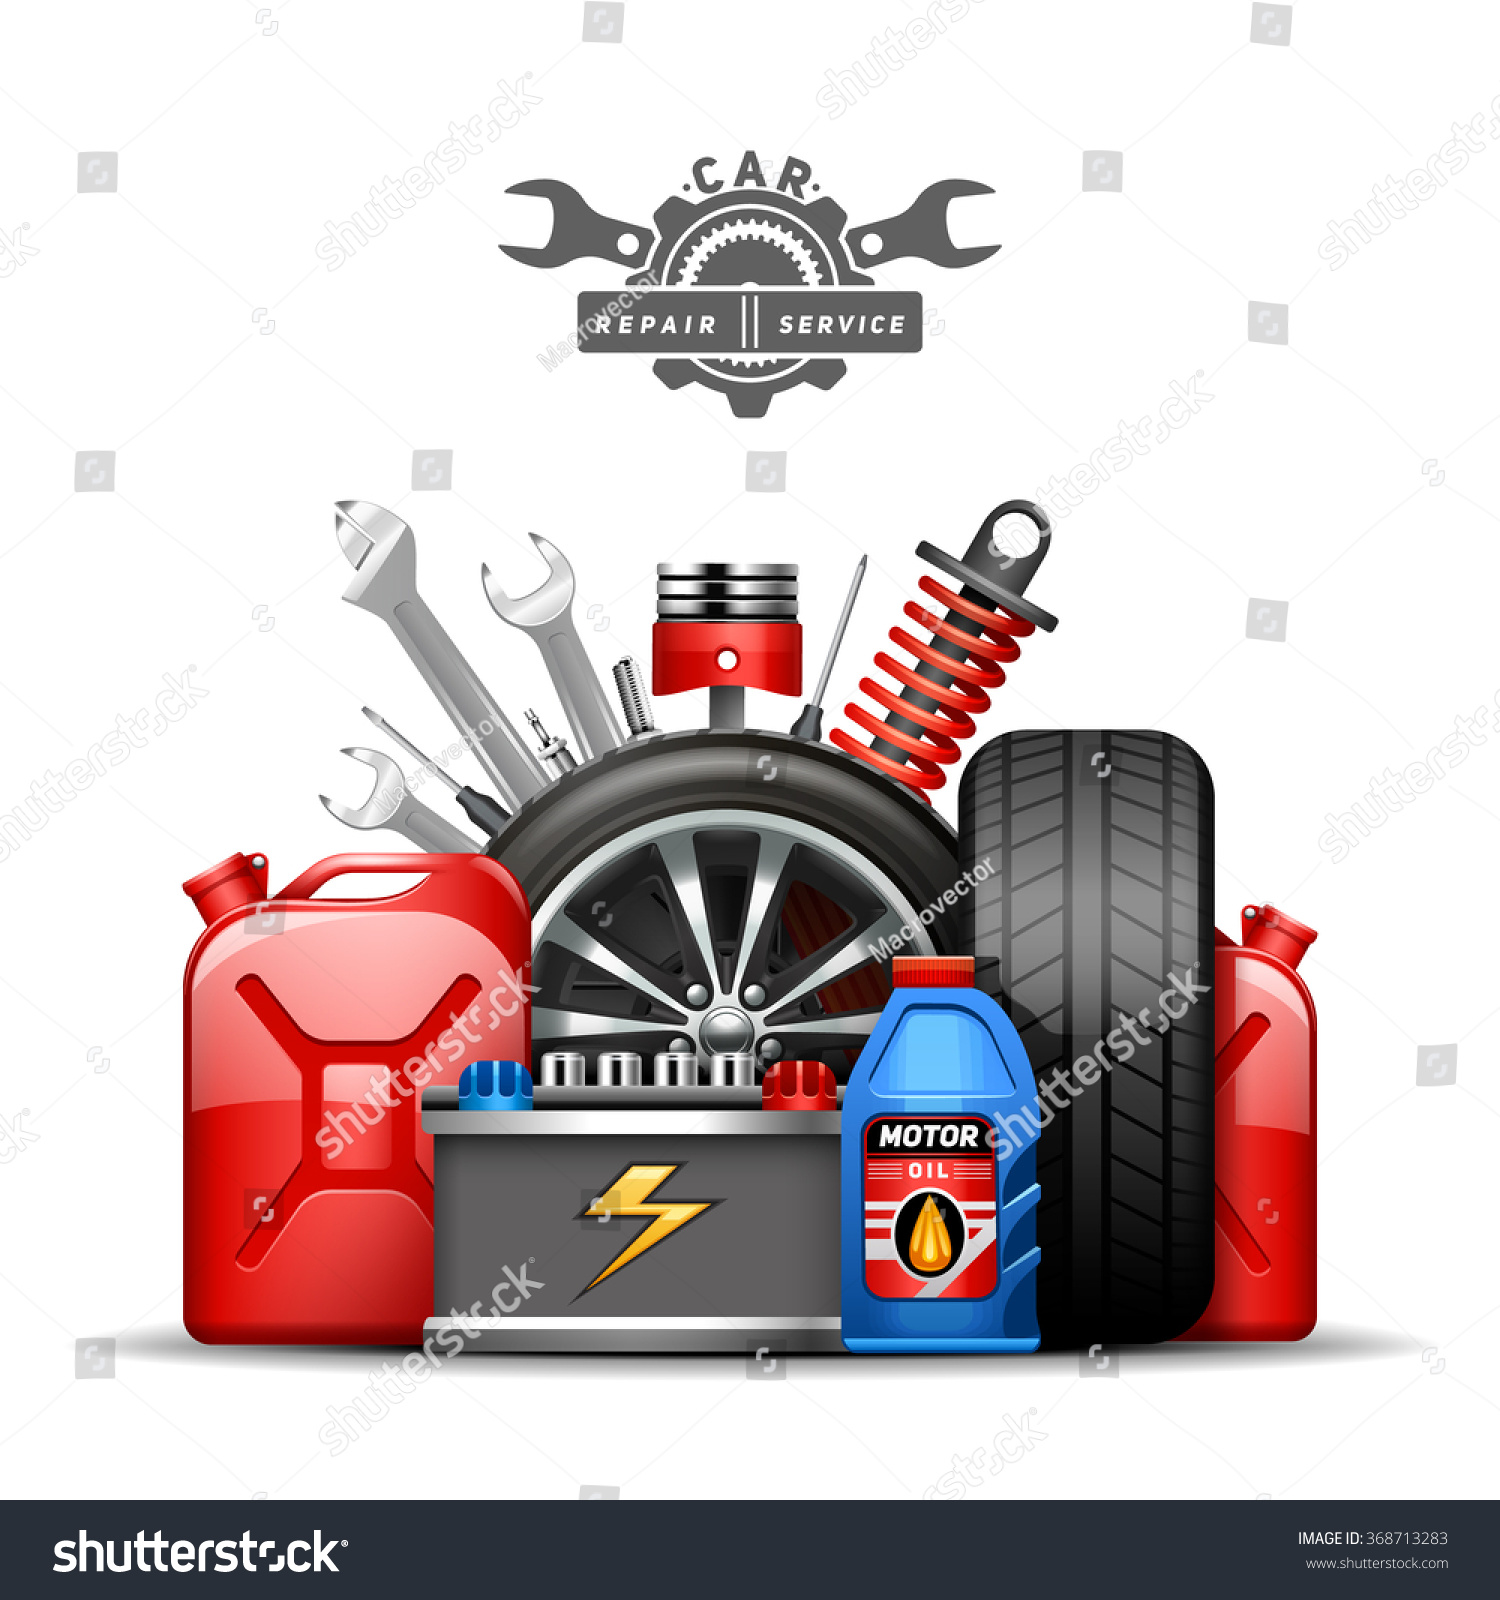 car service center colorful advertisement composition poster with wheels tires oil and gas canister flat abstract